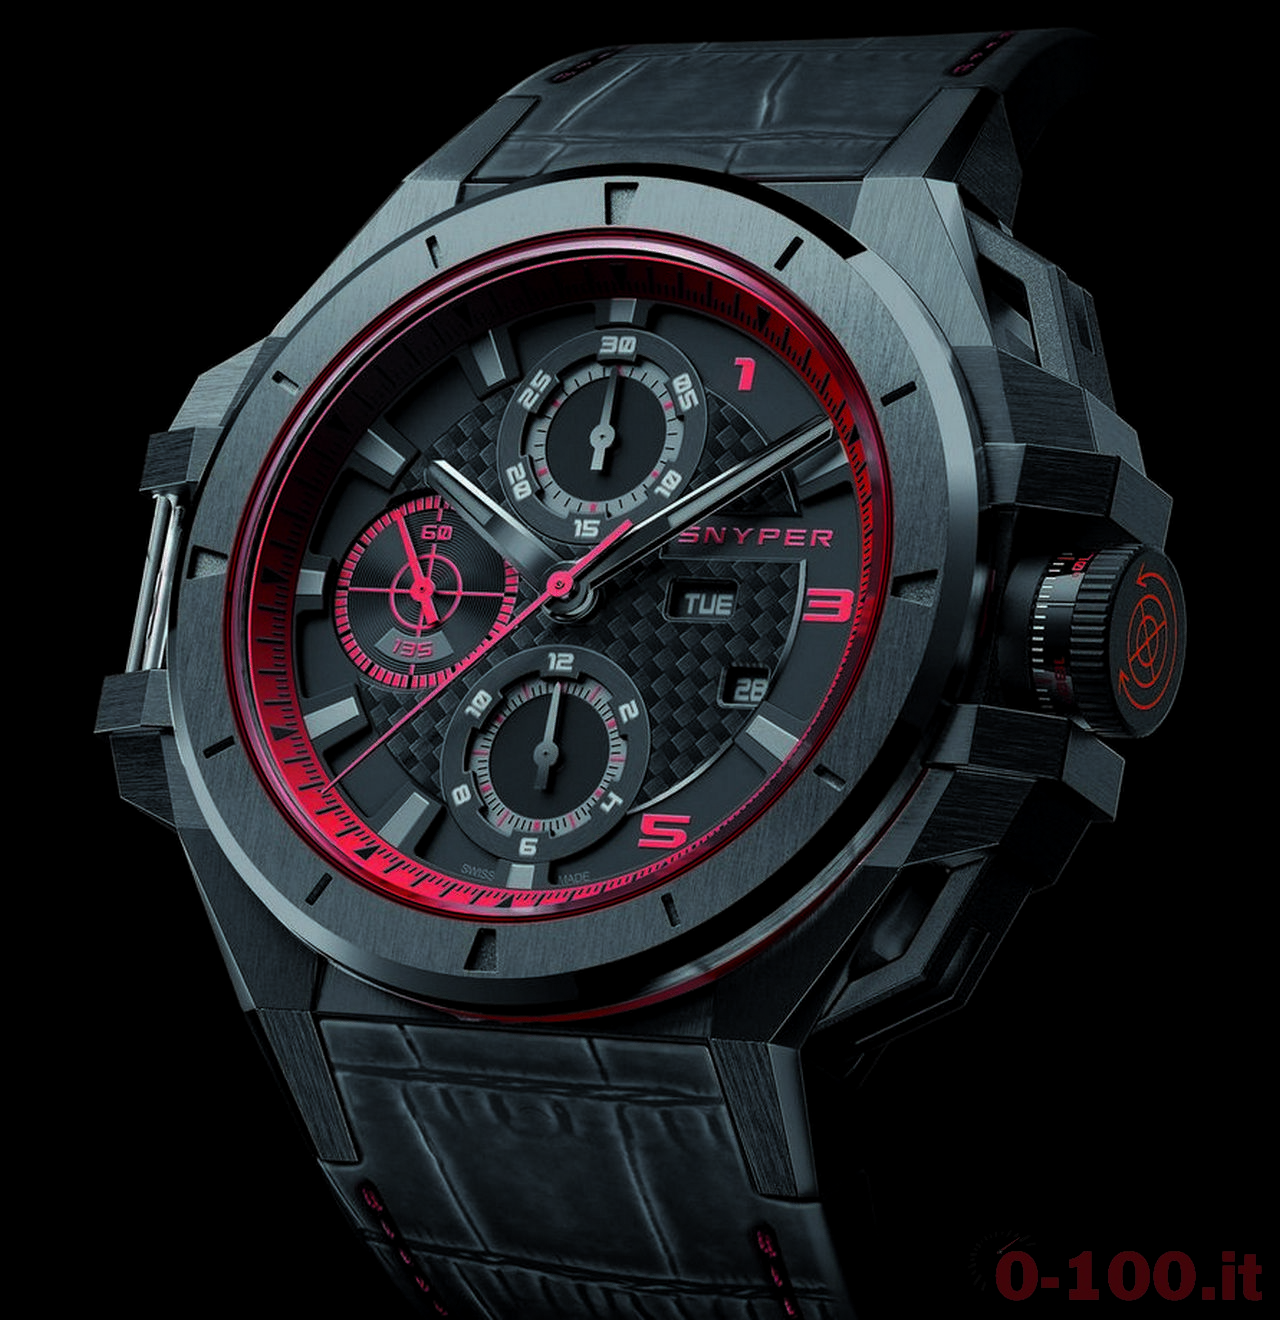 anteprima-baselworld-2015-snyper-ironclad-steel-pvd-black-red-edition_0-100_1